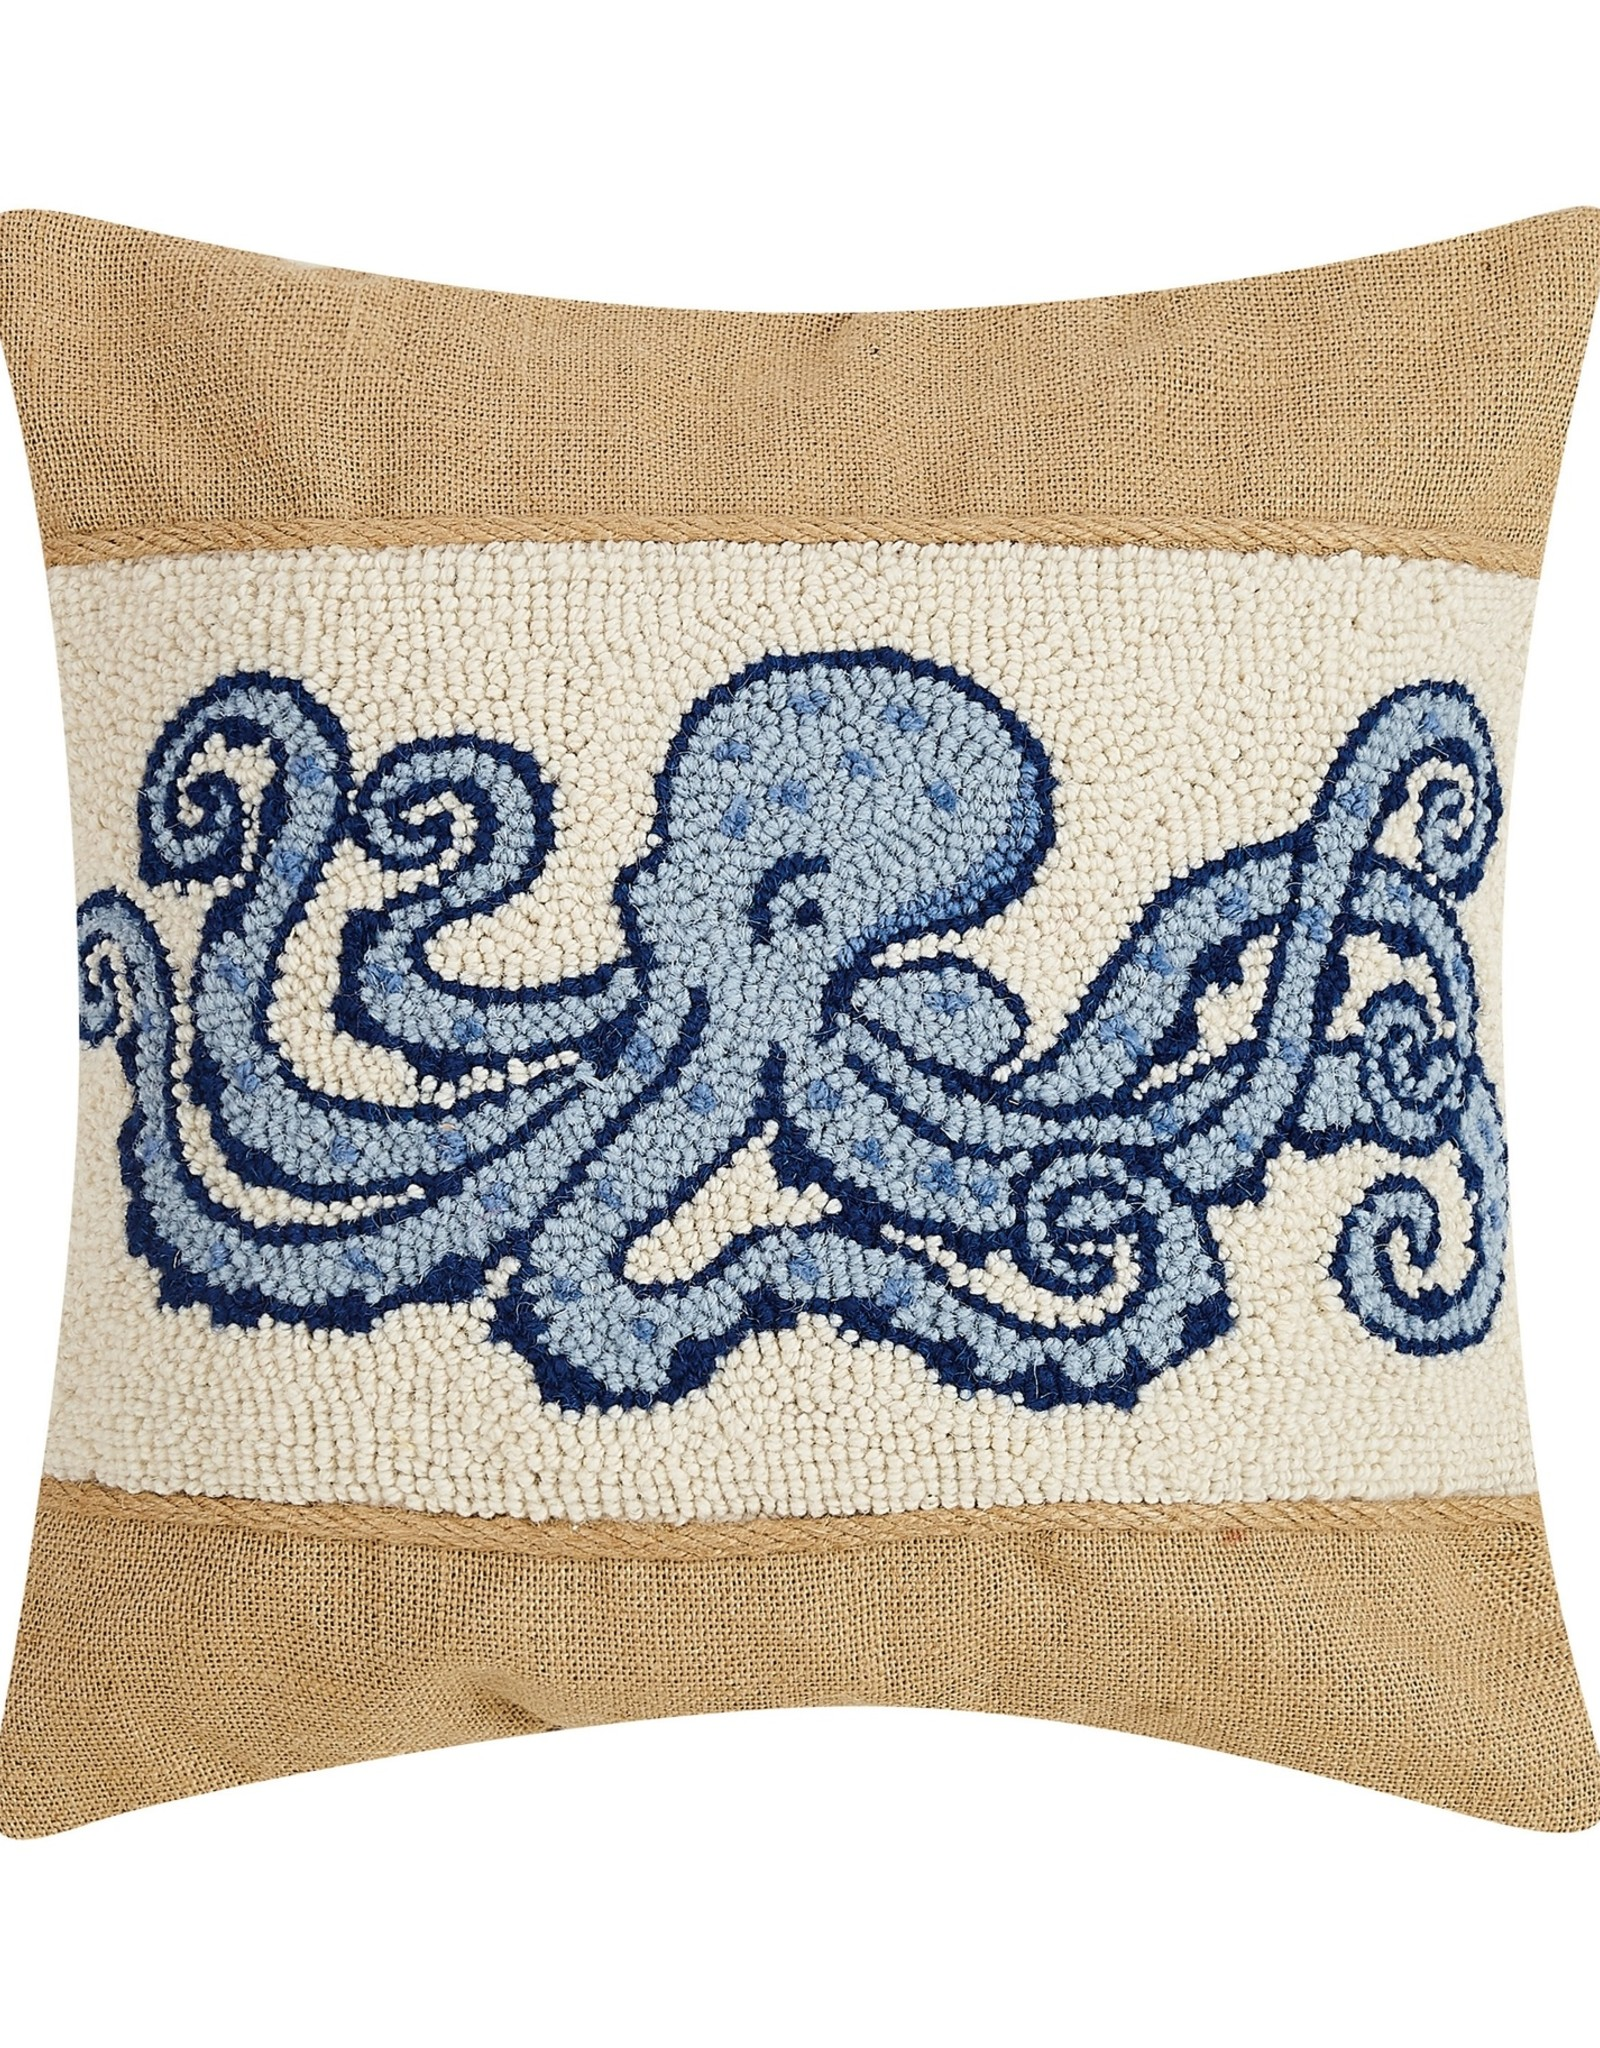 Peking Handicraft Octopus Hook Pillow